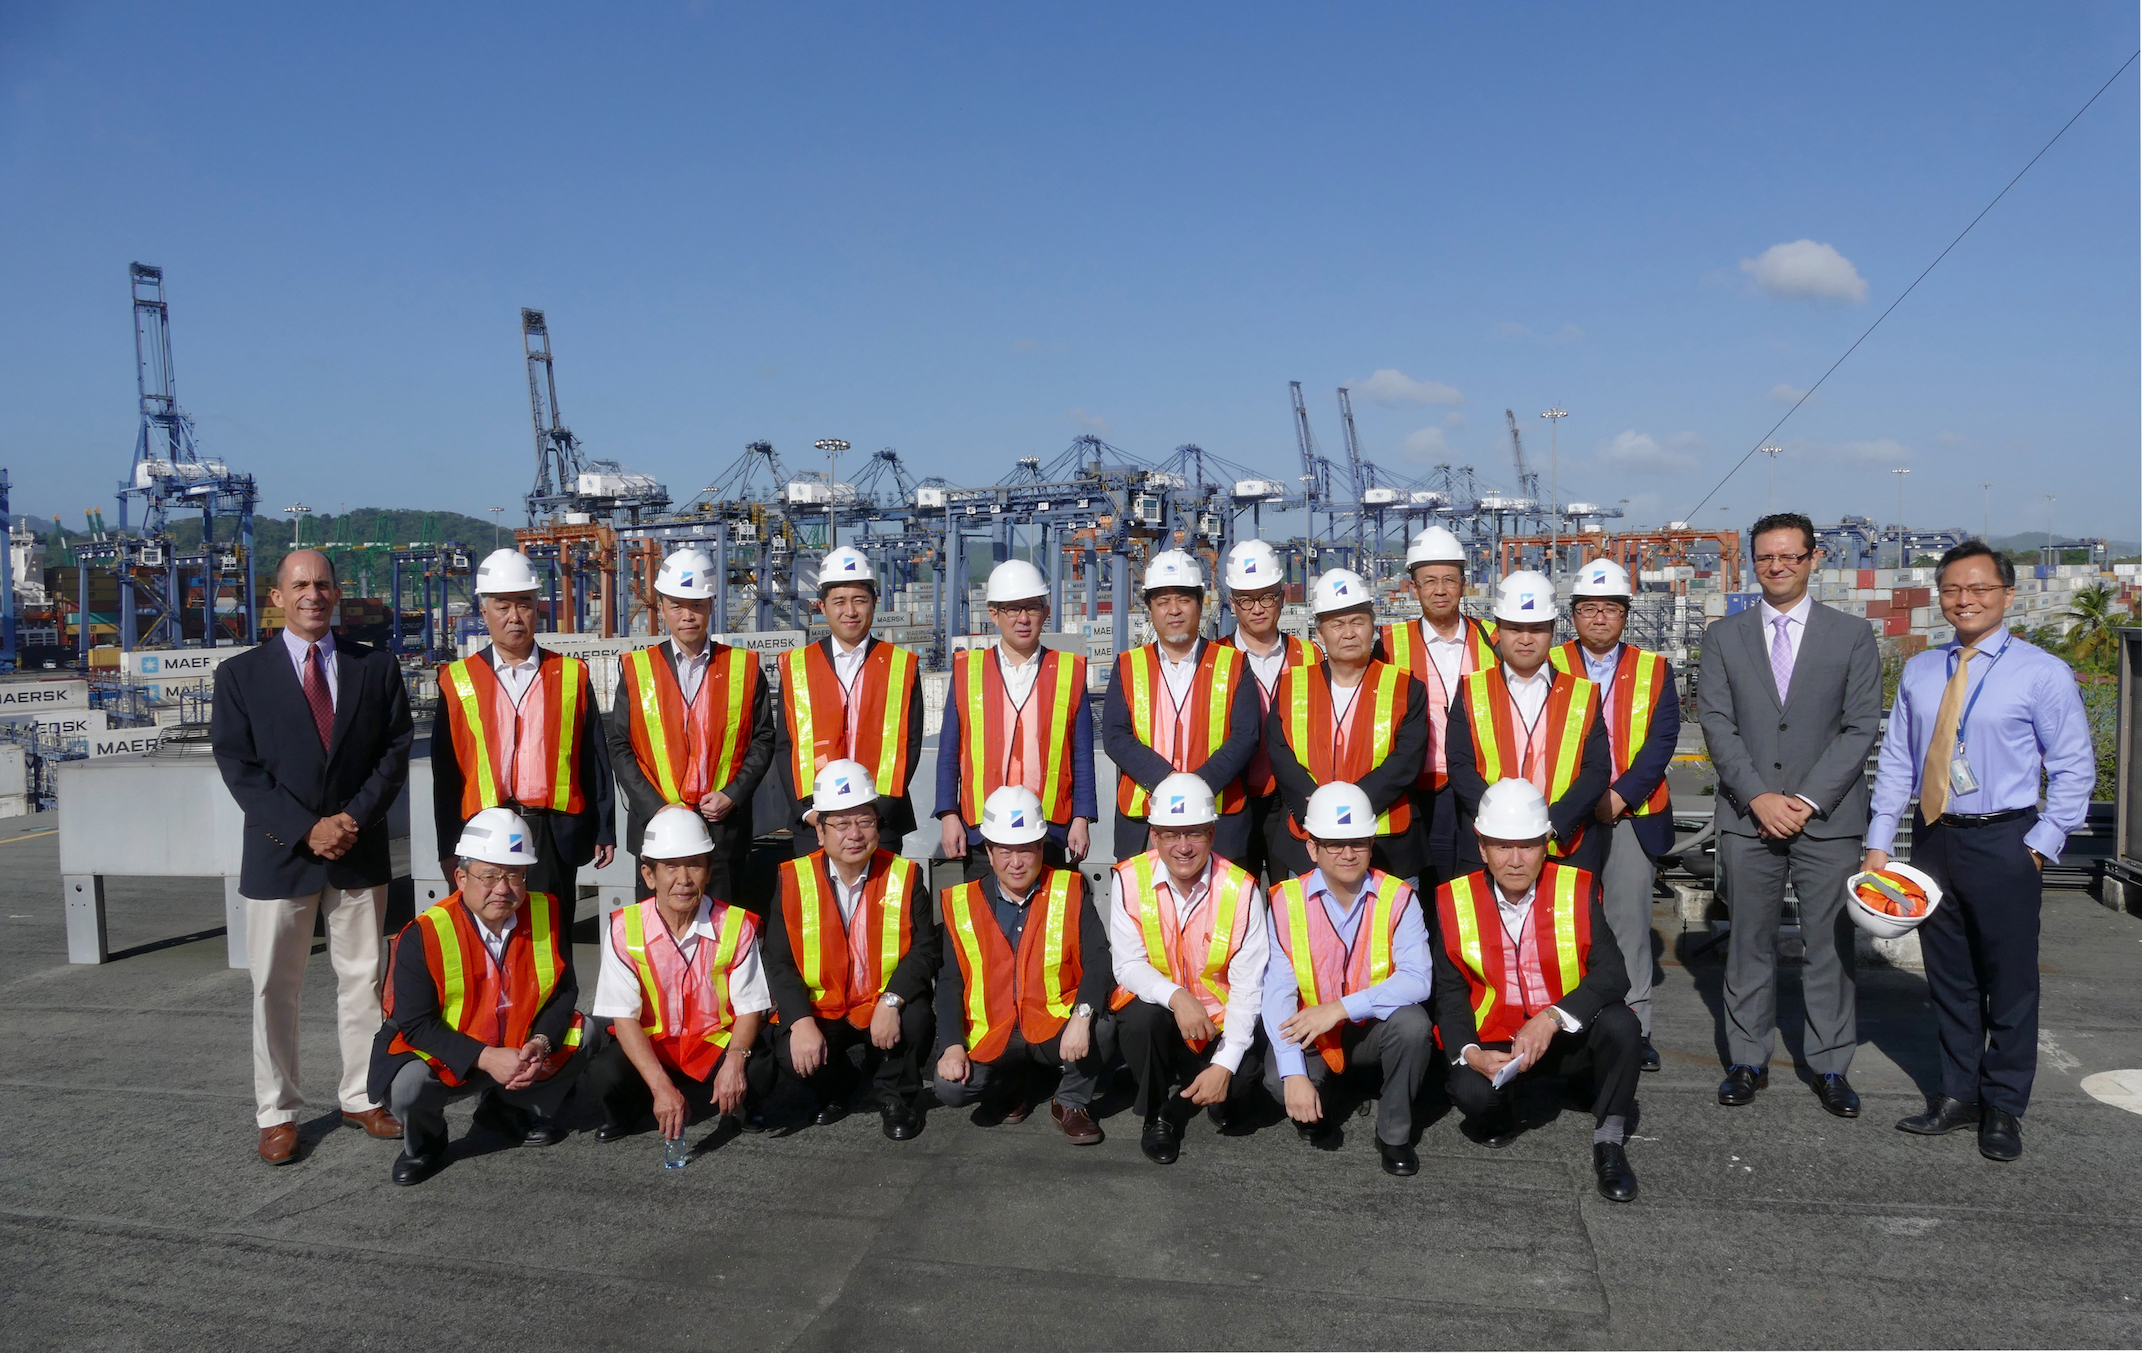 During the inspection tour in Balboa Port